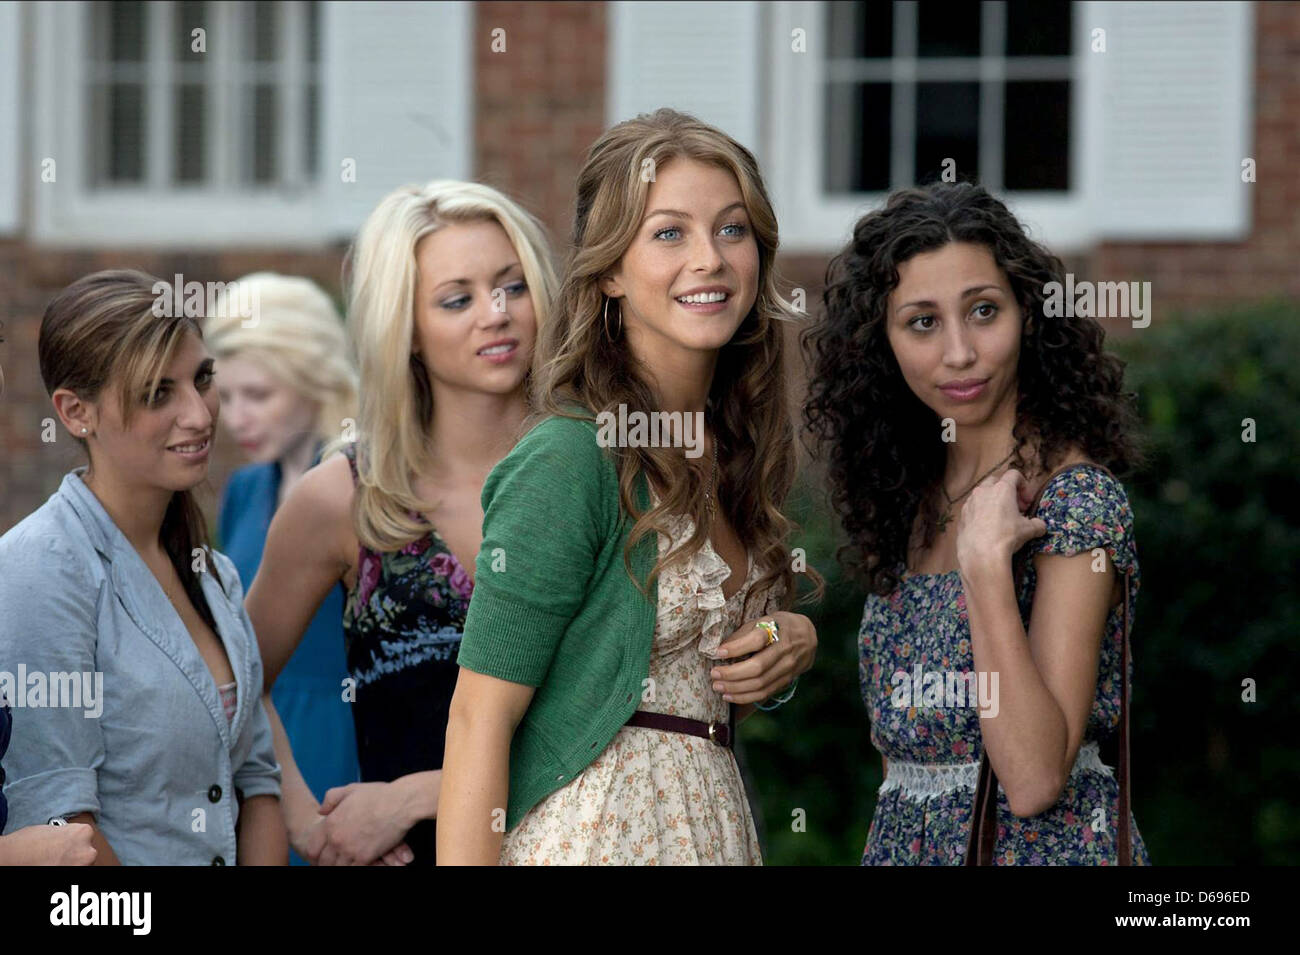 Footloose Film Still High Resolution Stock Photography And Images Alamy